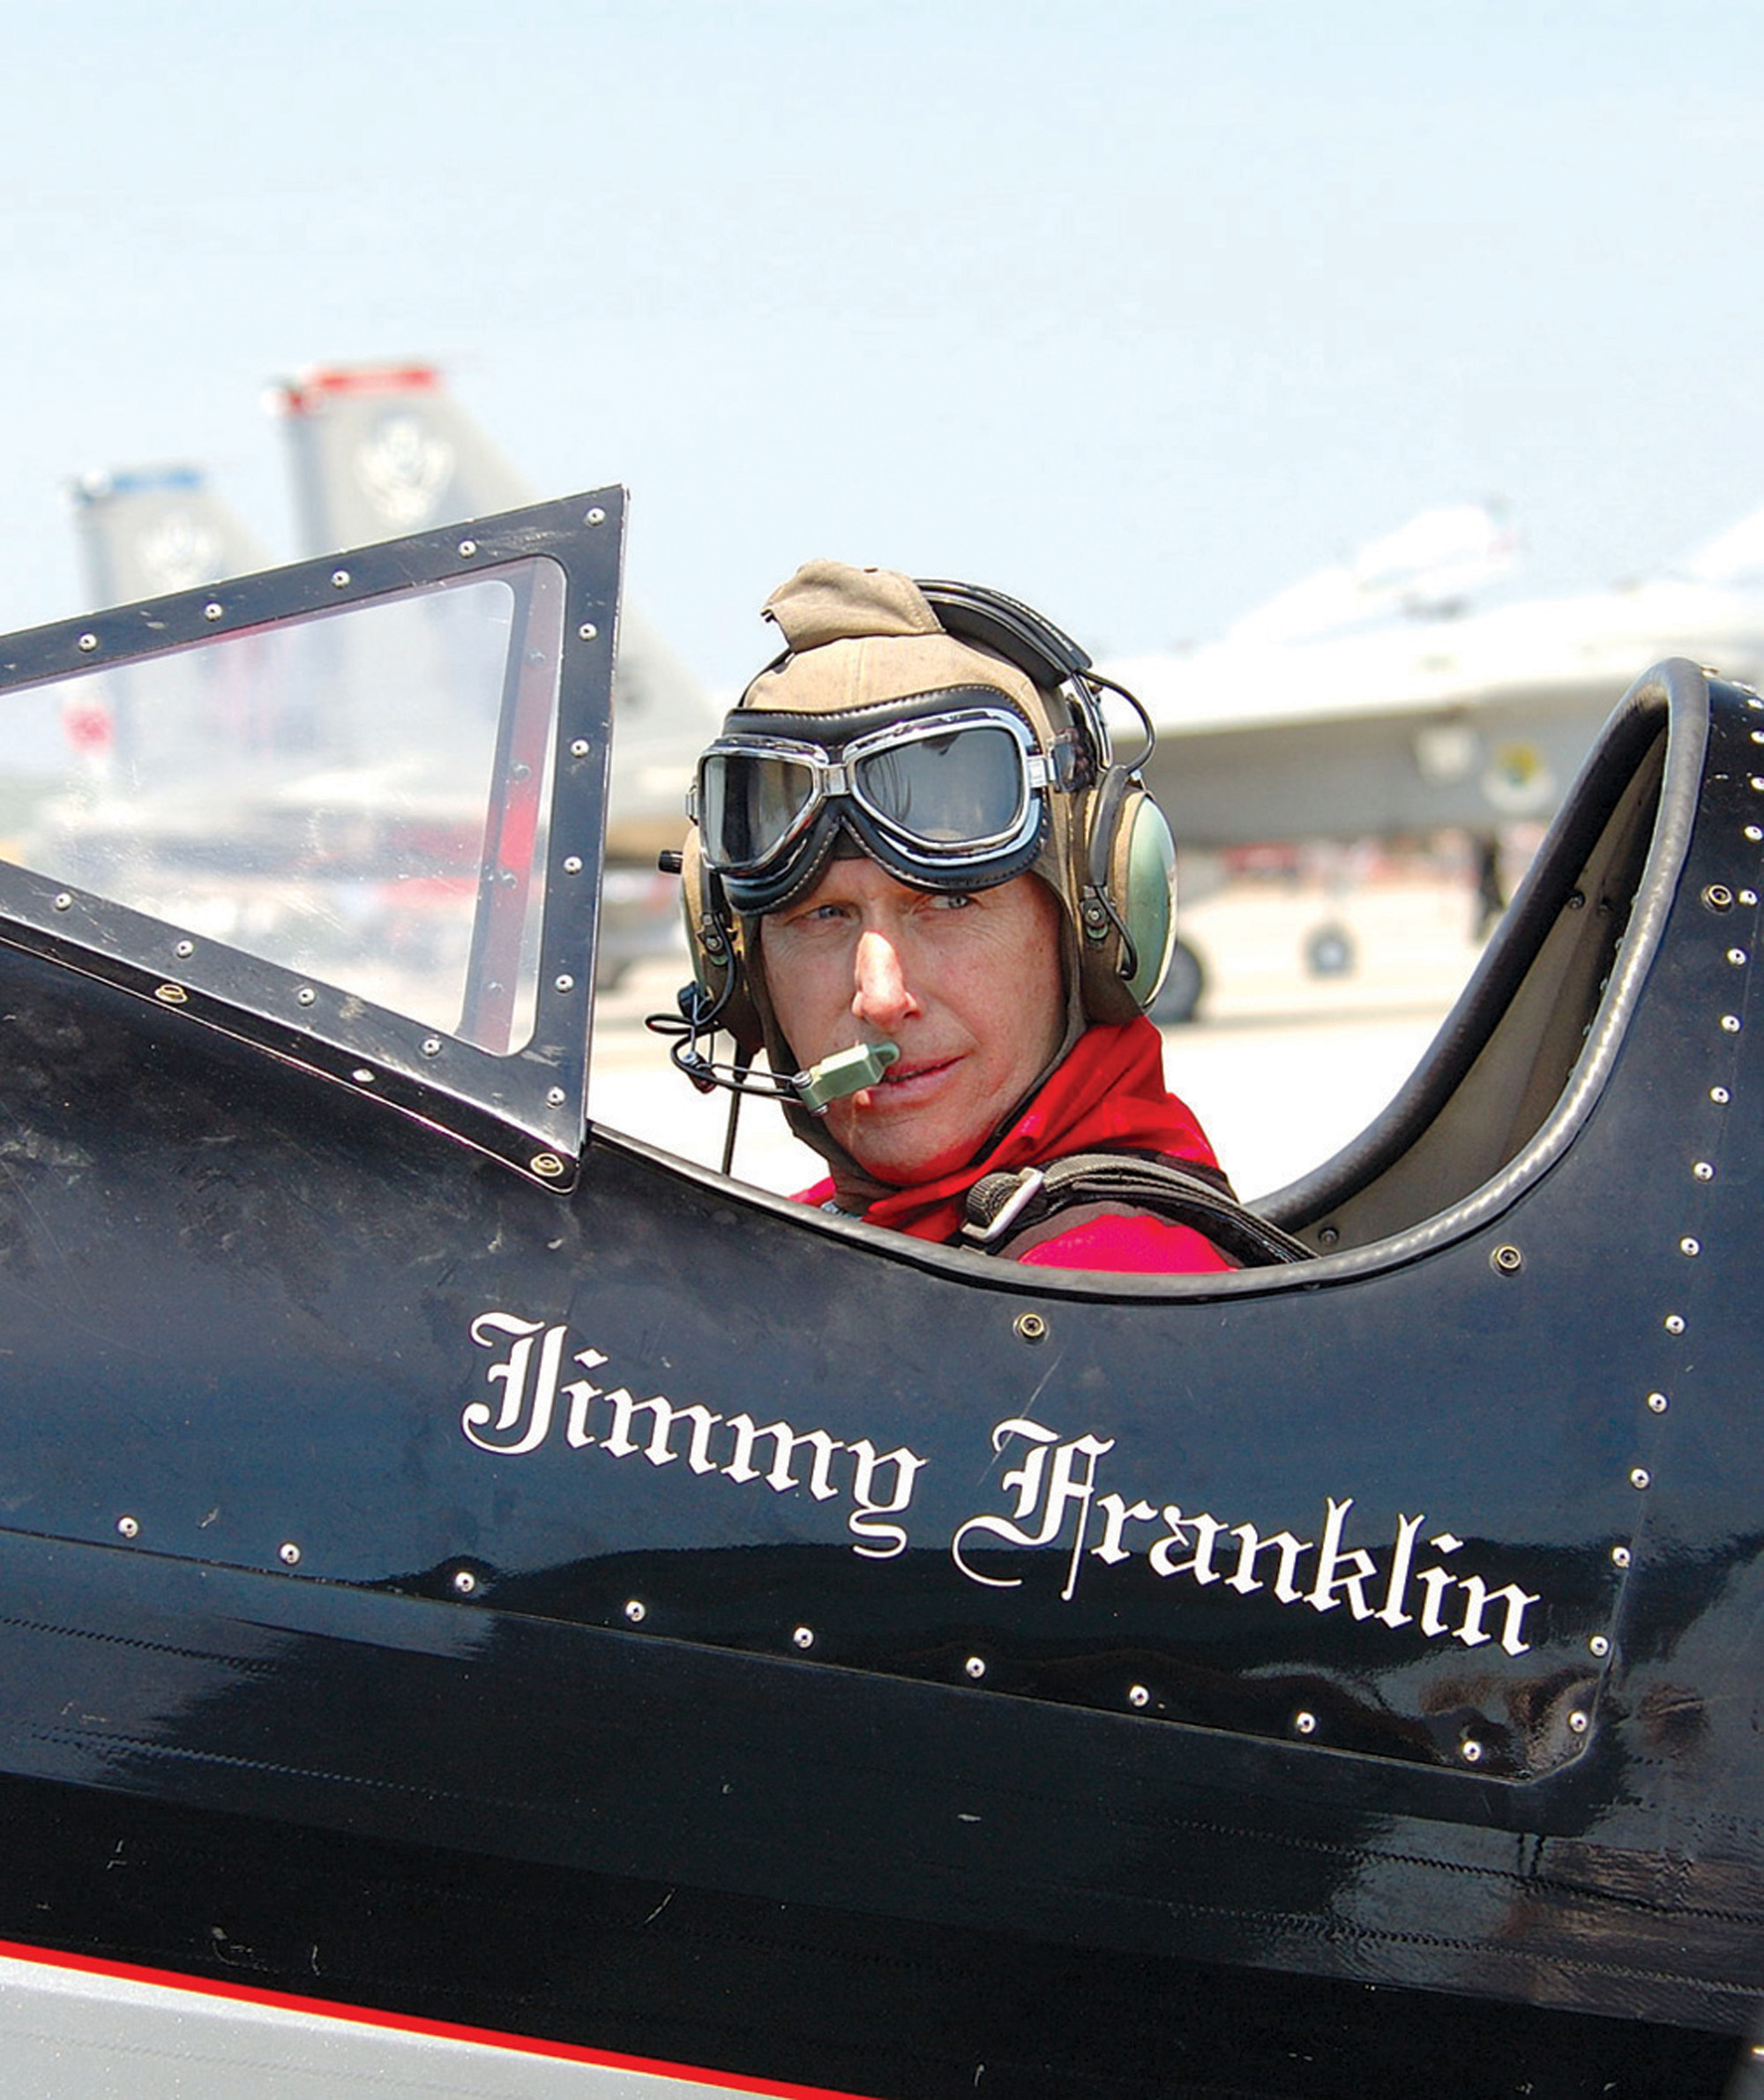 Aviation Community Mourns Loss of Legendary Air Show Pilots Jimmy Franklin and Bobby Younkin